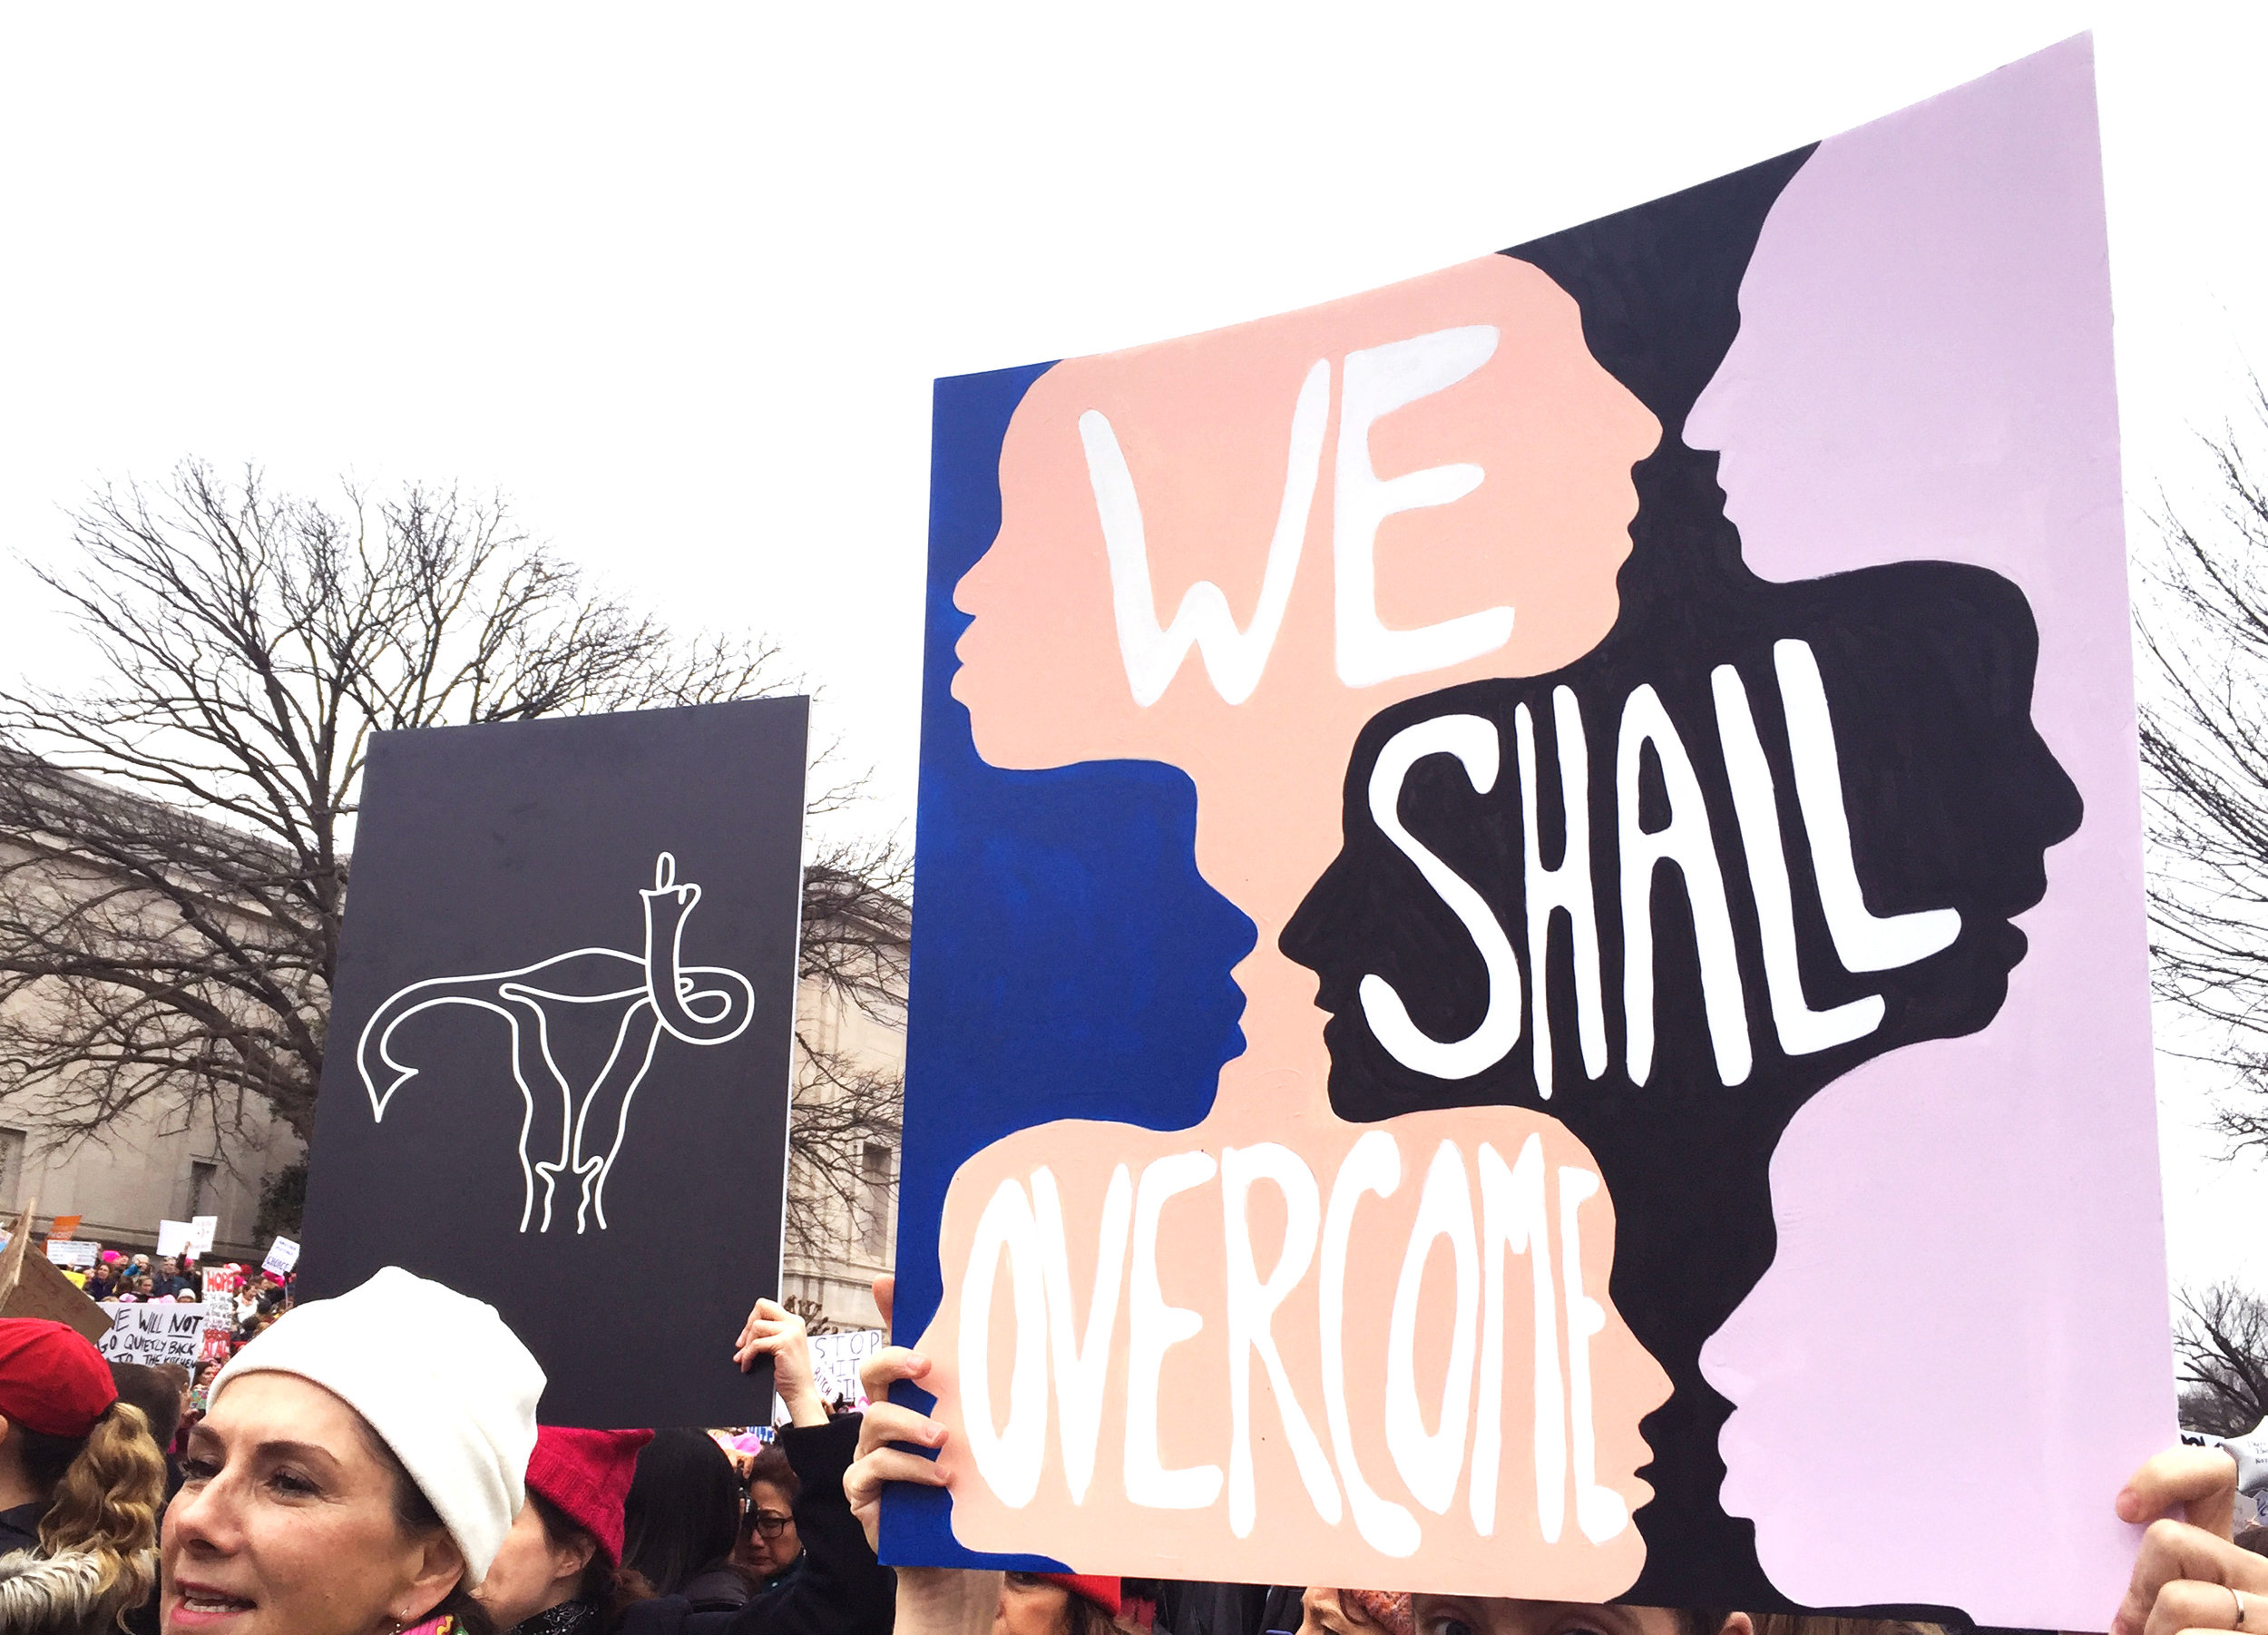 sign and photo by Kathryn Zaremba from the Women's March on Washington 2017